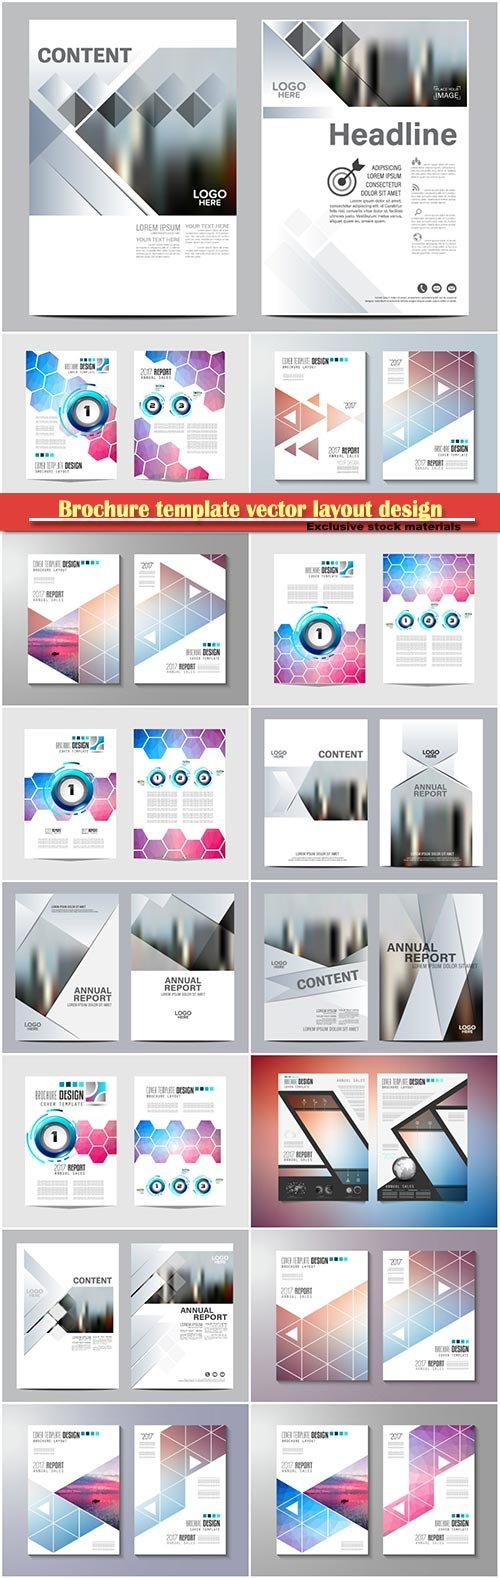 Brochure template vector layout design, corporate business annual report, magazine, flyer mockup # 118